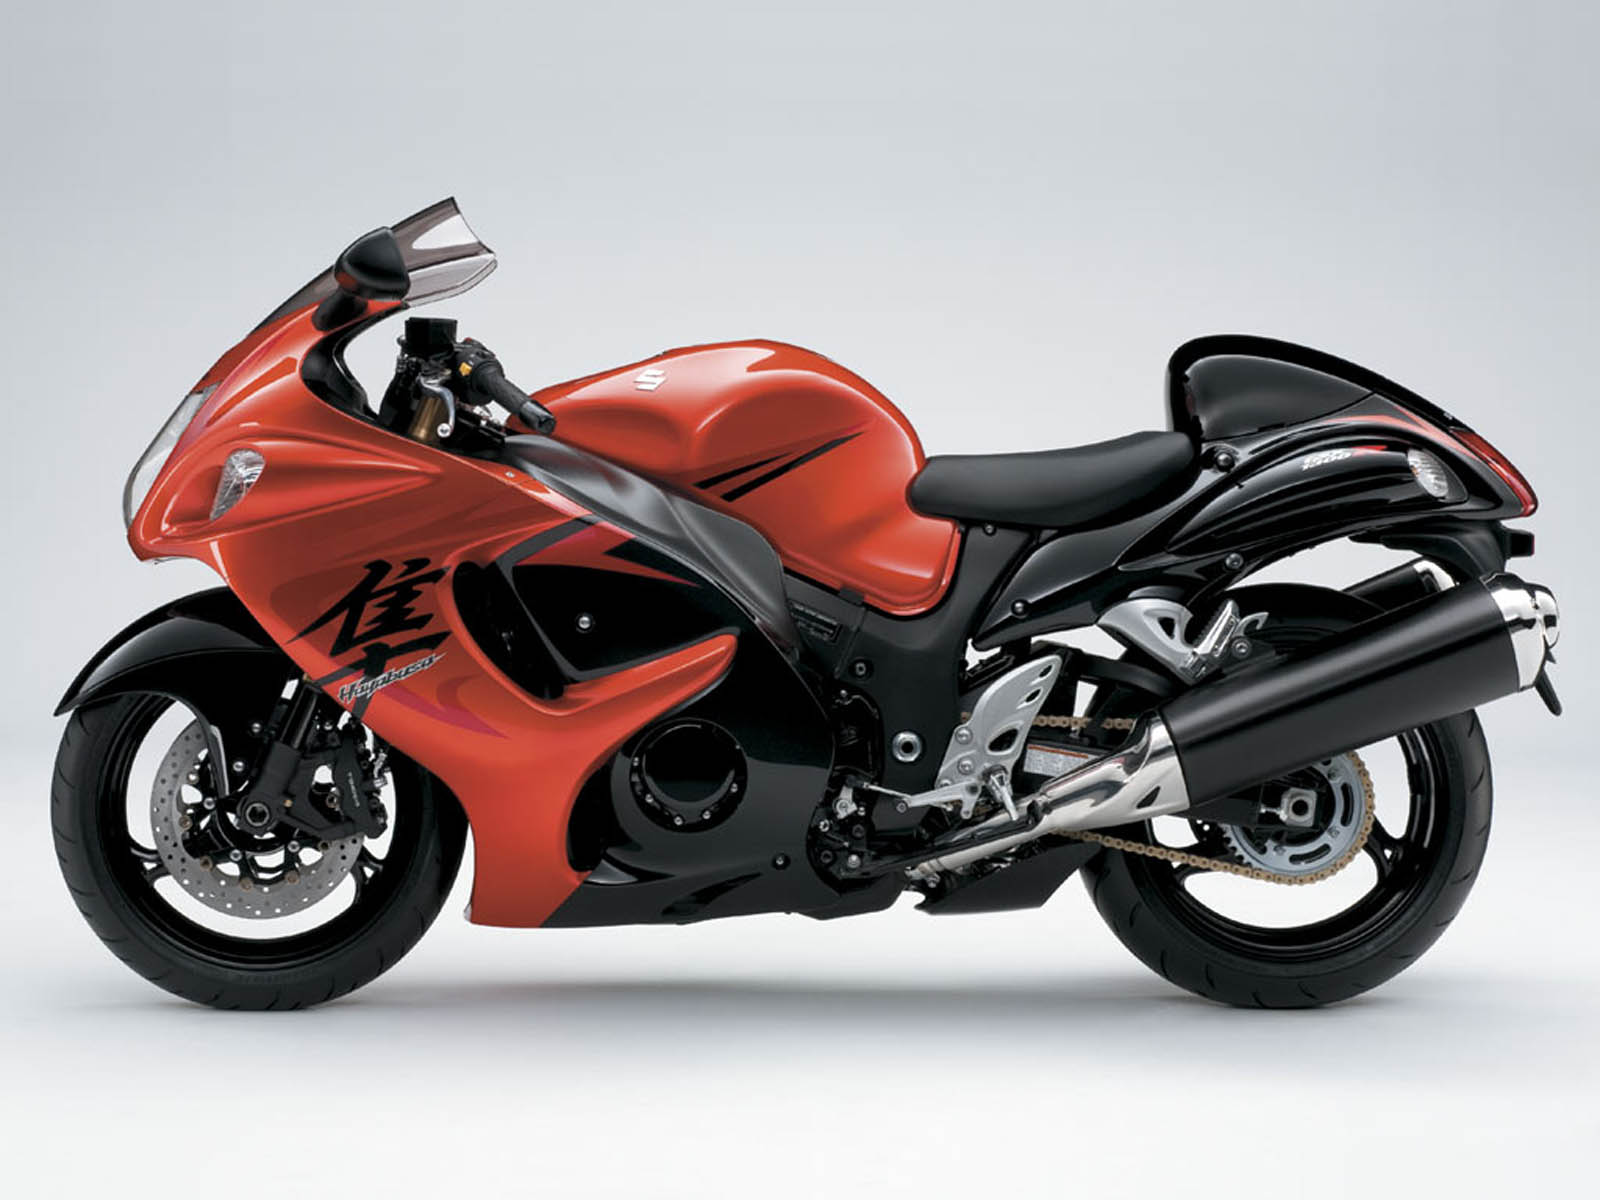 Suzuki Hayabusa GSX1300R Bike Wallpapers   Salon des Refuss 1600x1200